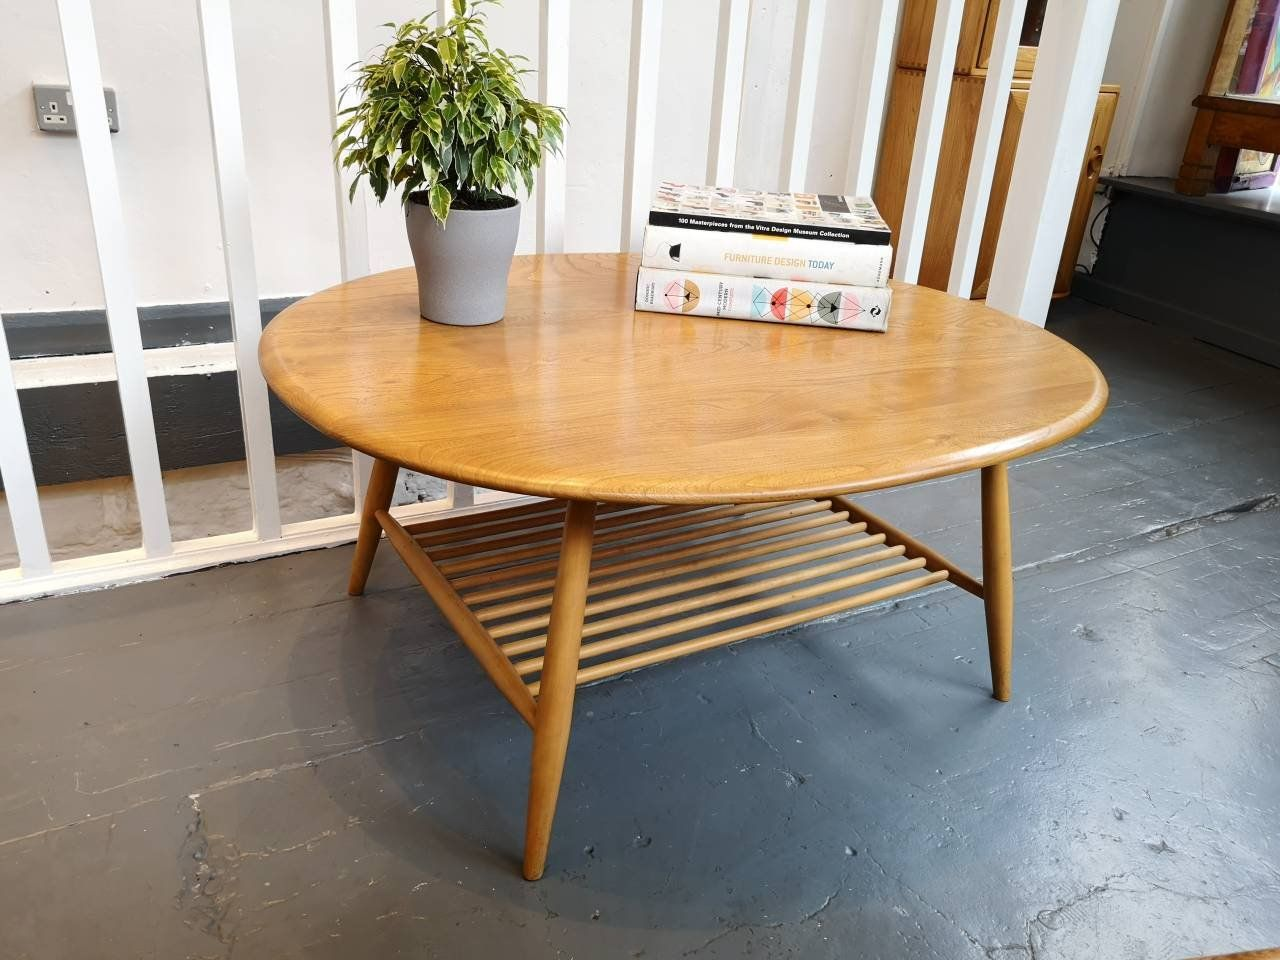 1960s Ercol Round Coffee Table With Magazine Rack In Elm Beech Vintage Retro Mid Century Coffee Table Vintage Room Ercol Furniture [ 960 x 1280 Pixel ]